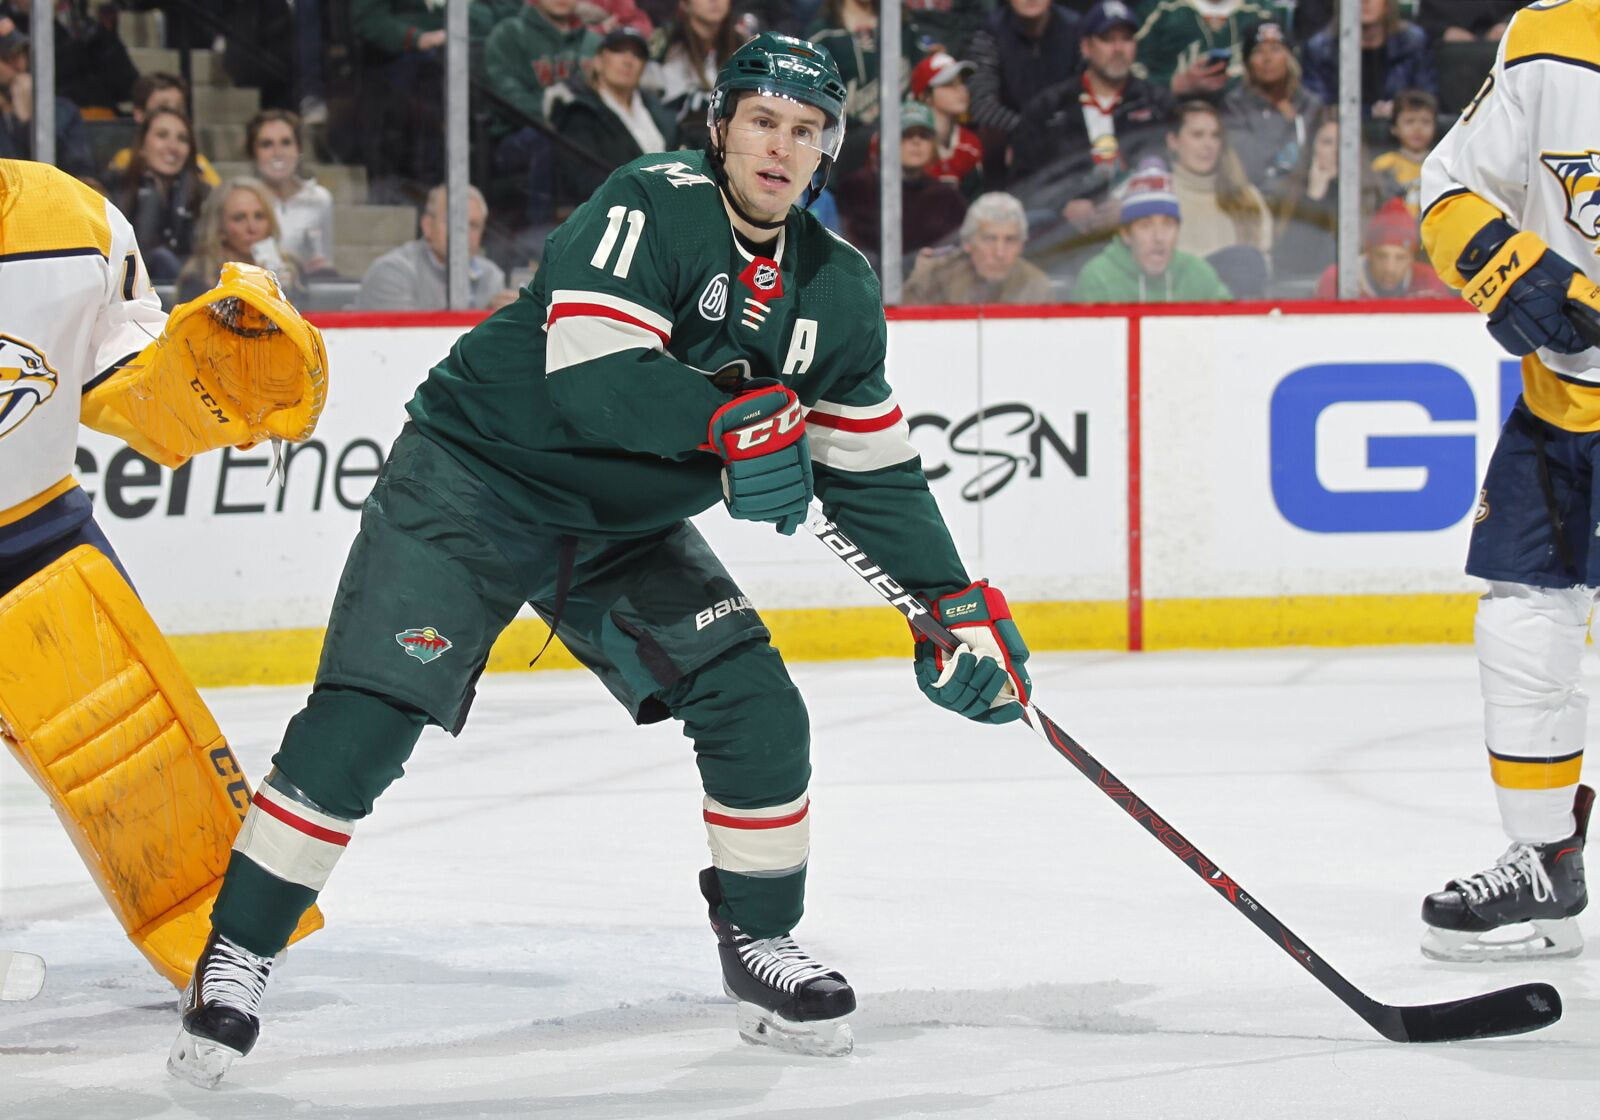 Minnesota Wild: Top 3 players who will be better in 2019